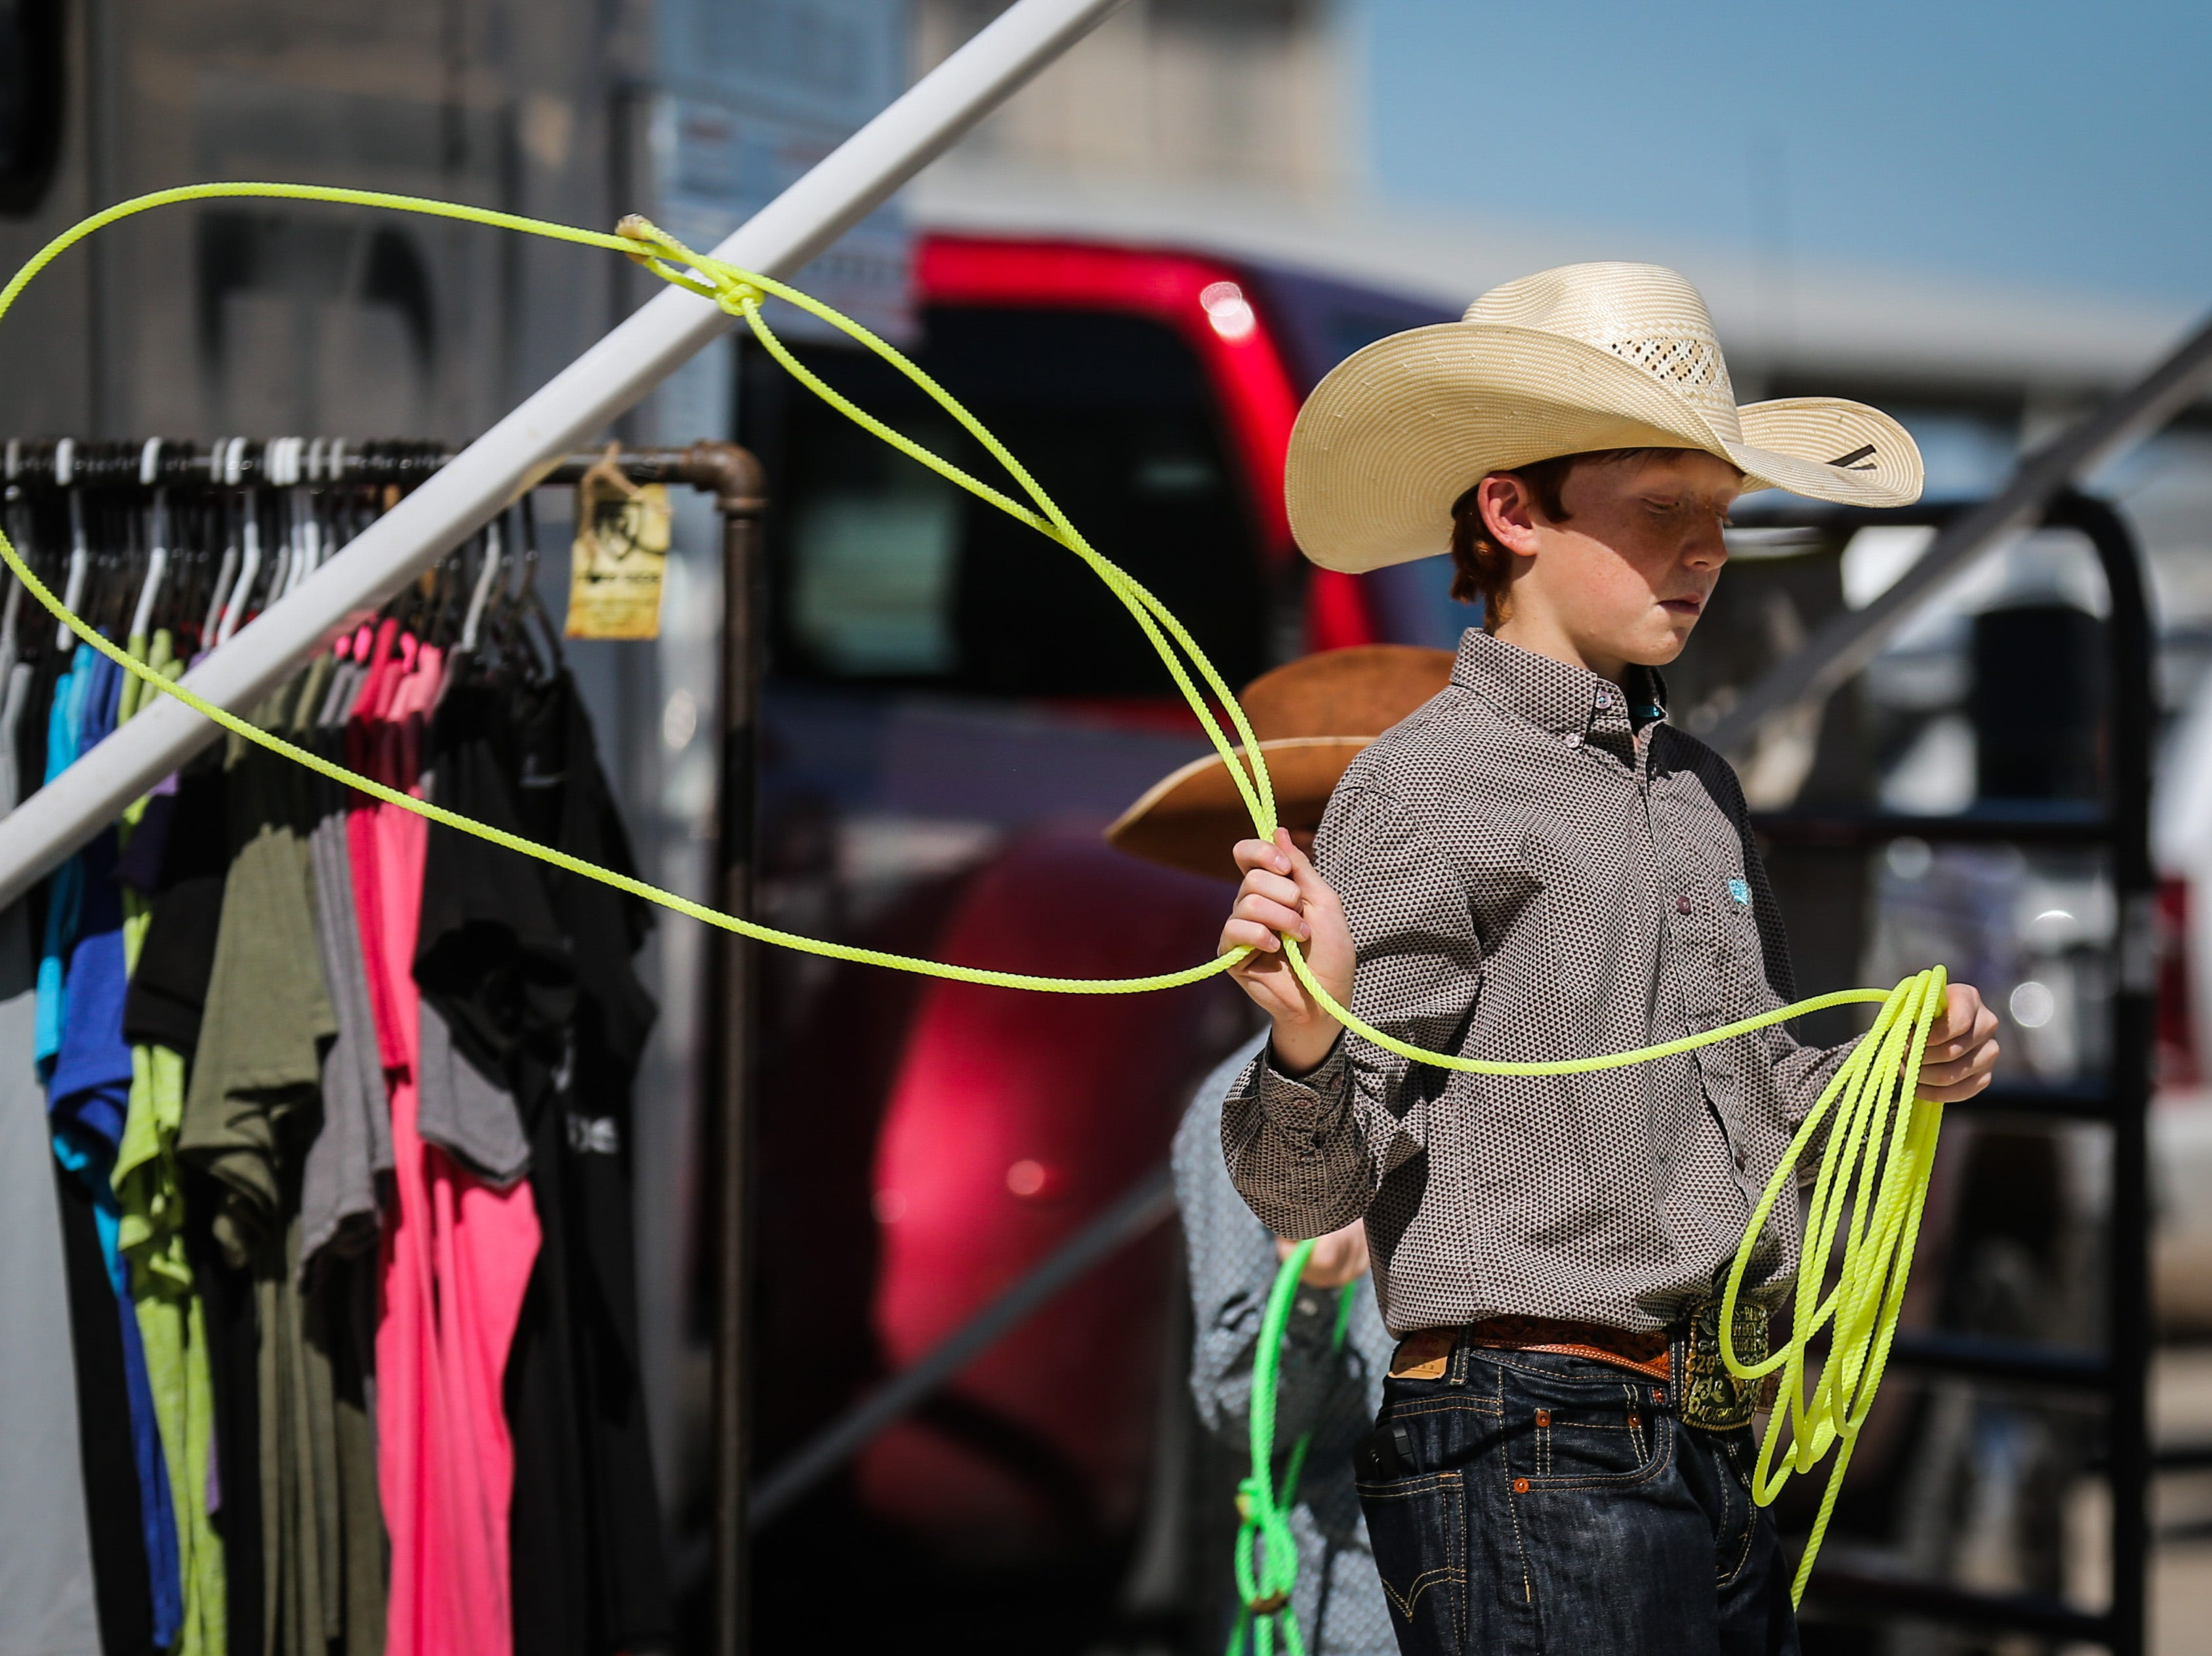 Casey Miller, 12, practices with his rope Saturday, Oct. 27, 2018, during Cinch Roping Fiesta.